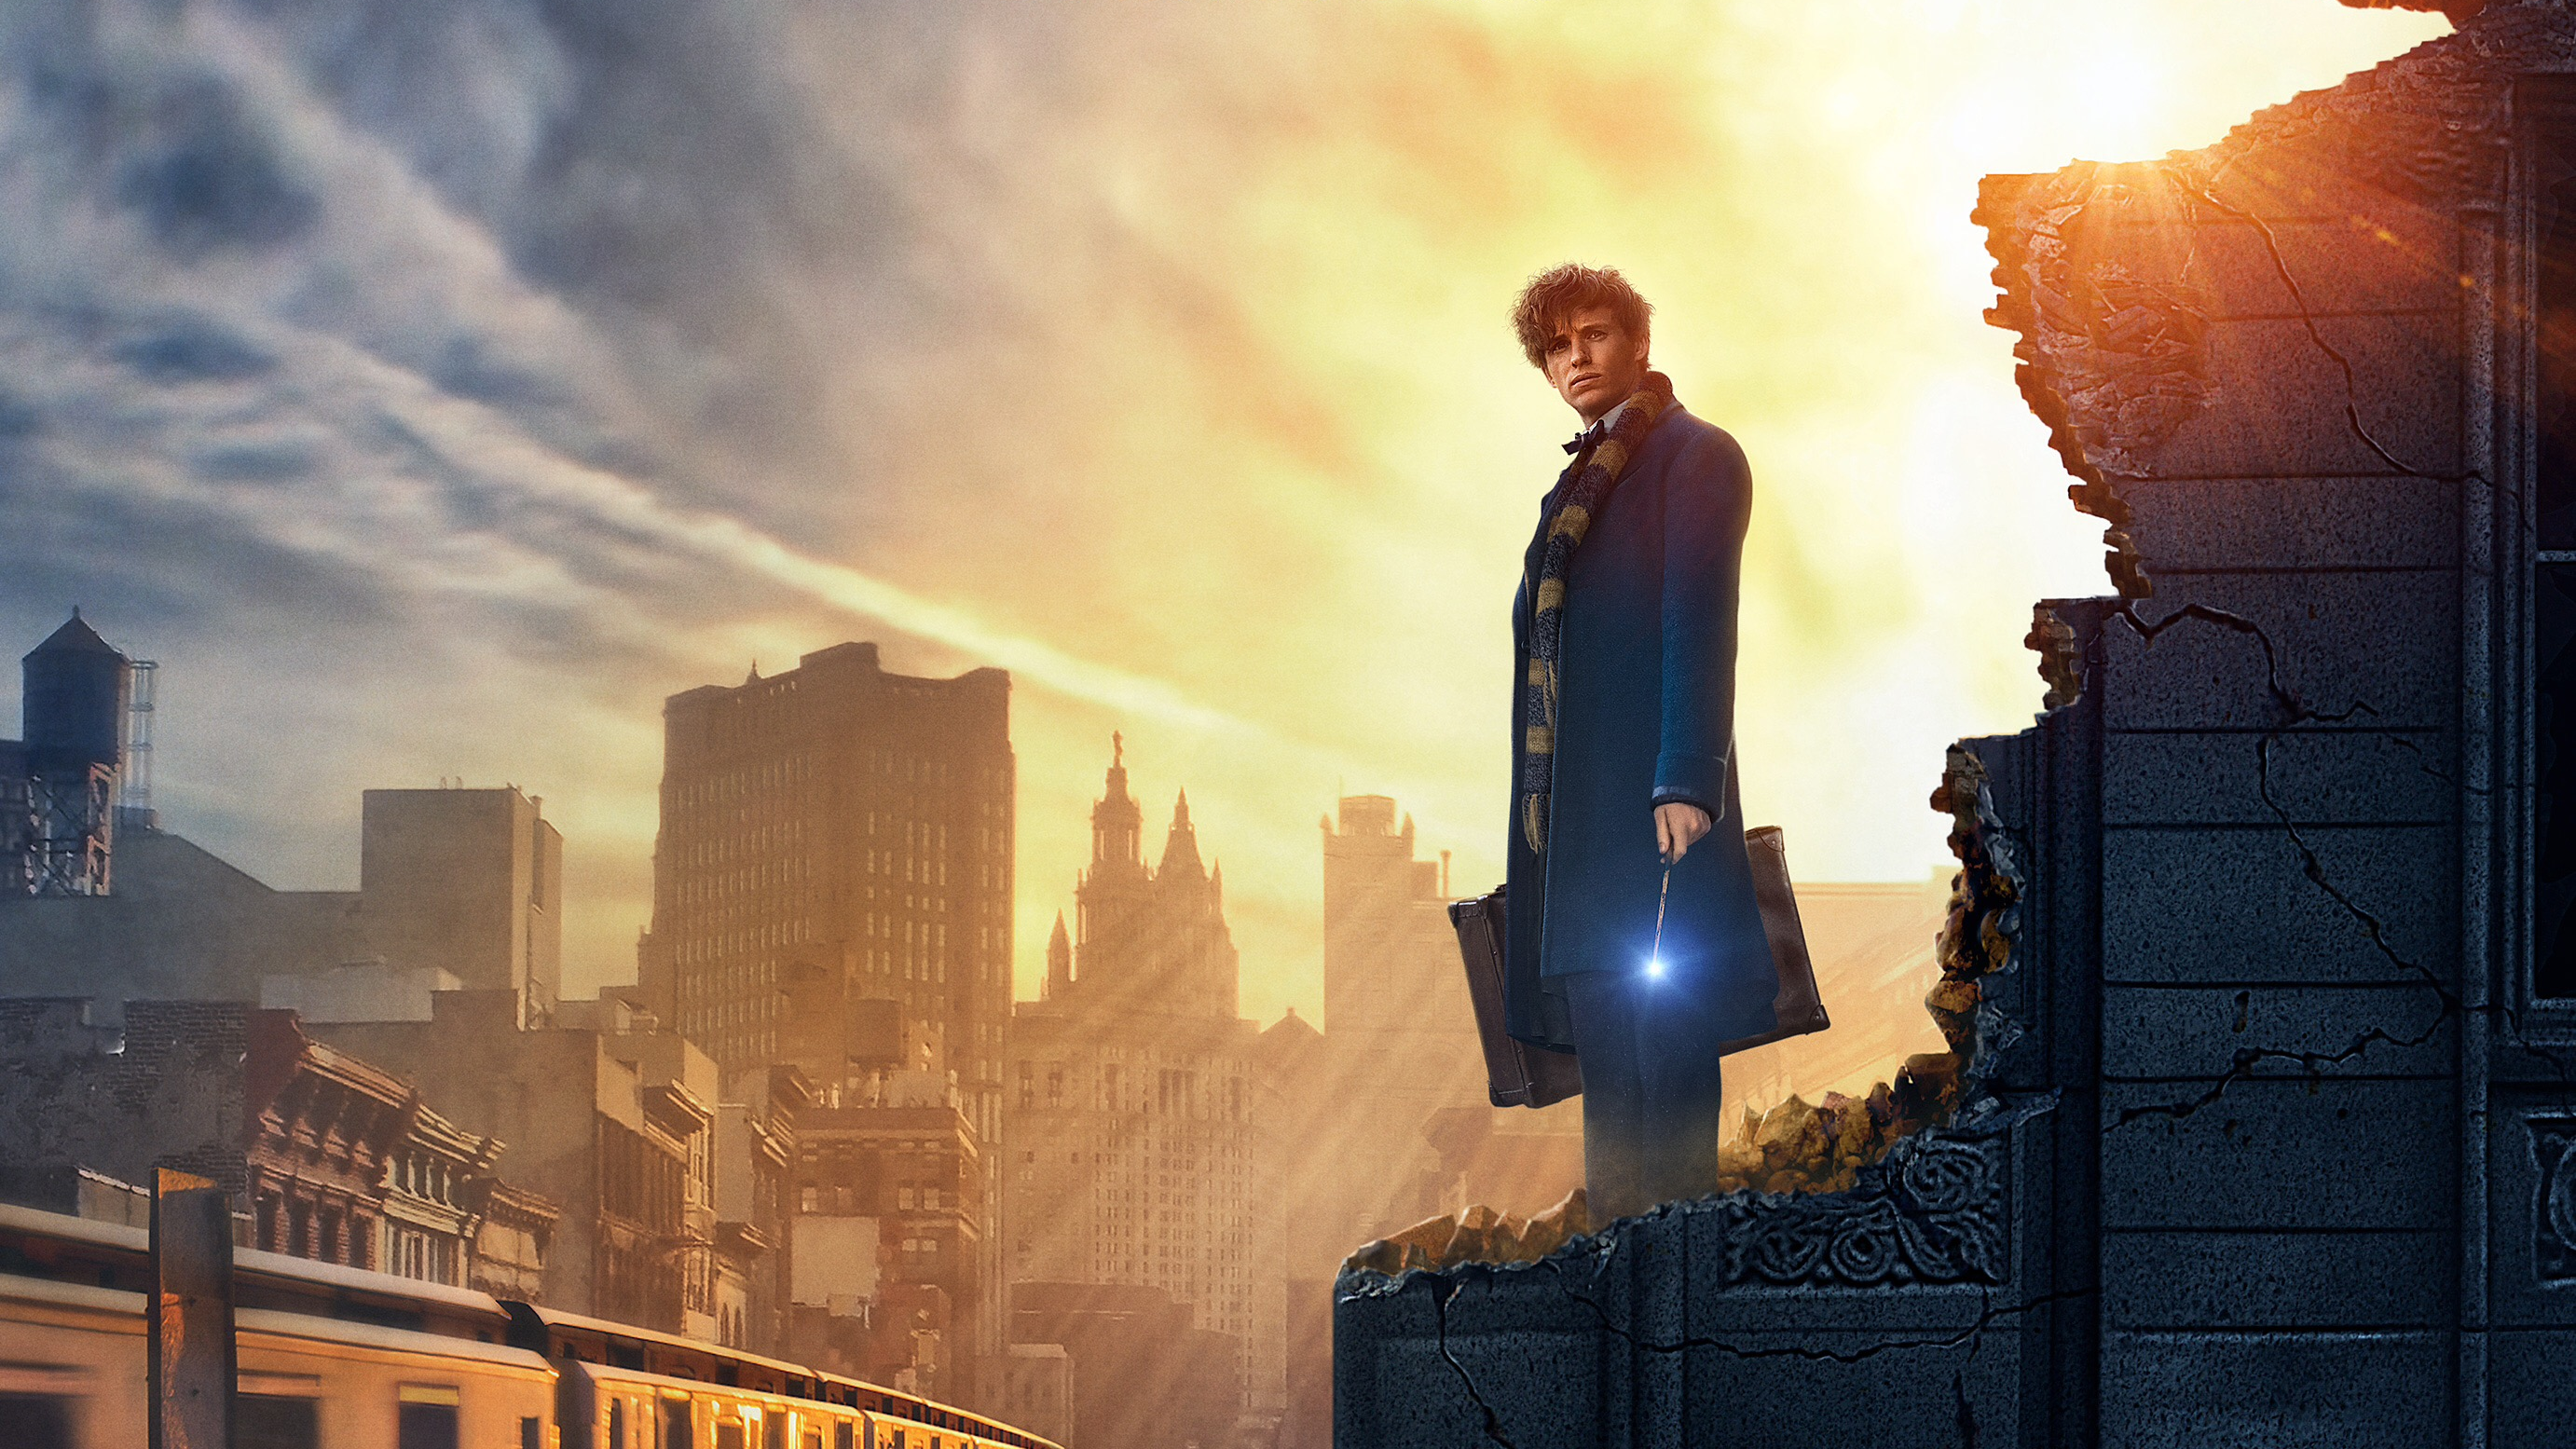 Image Result For Fantastic Beasts Wallpaper Hd Harry